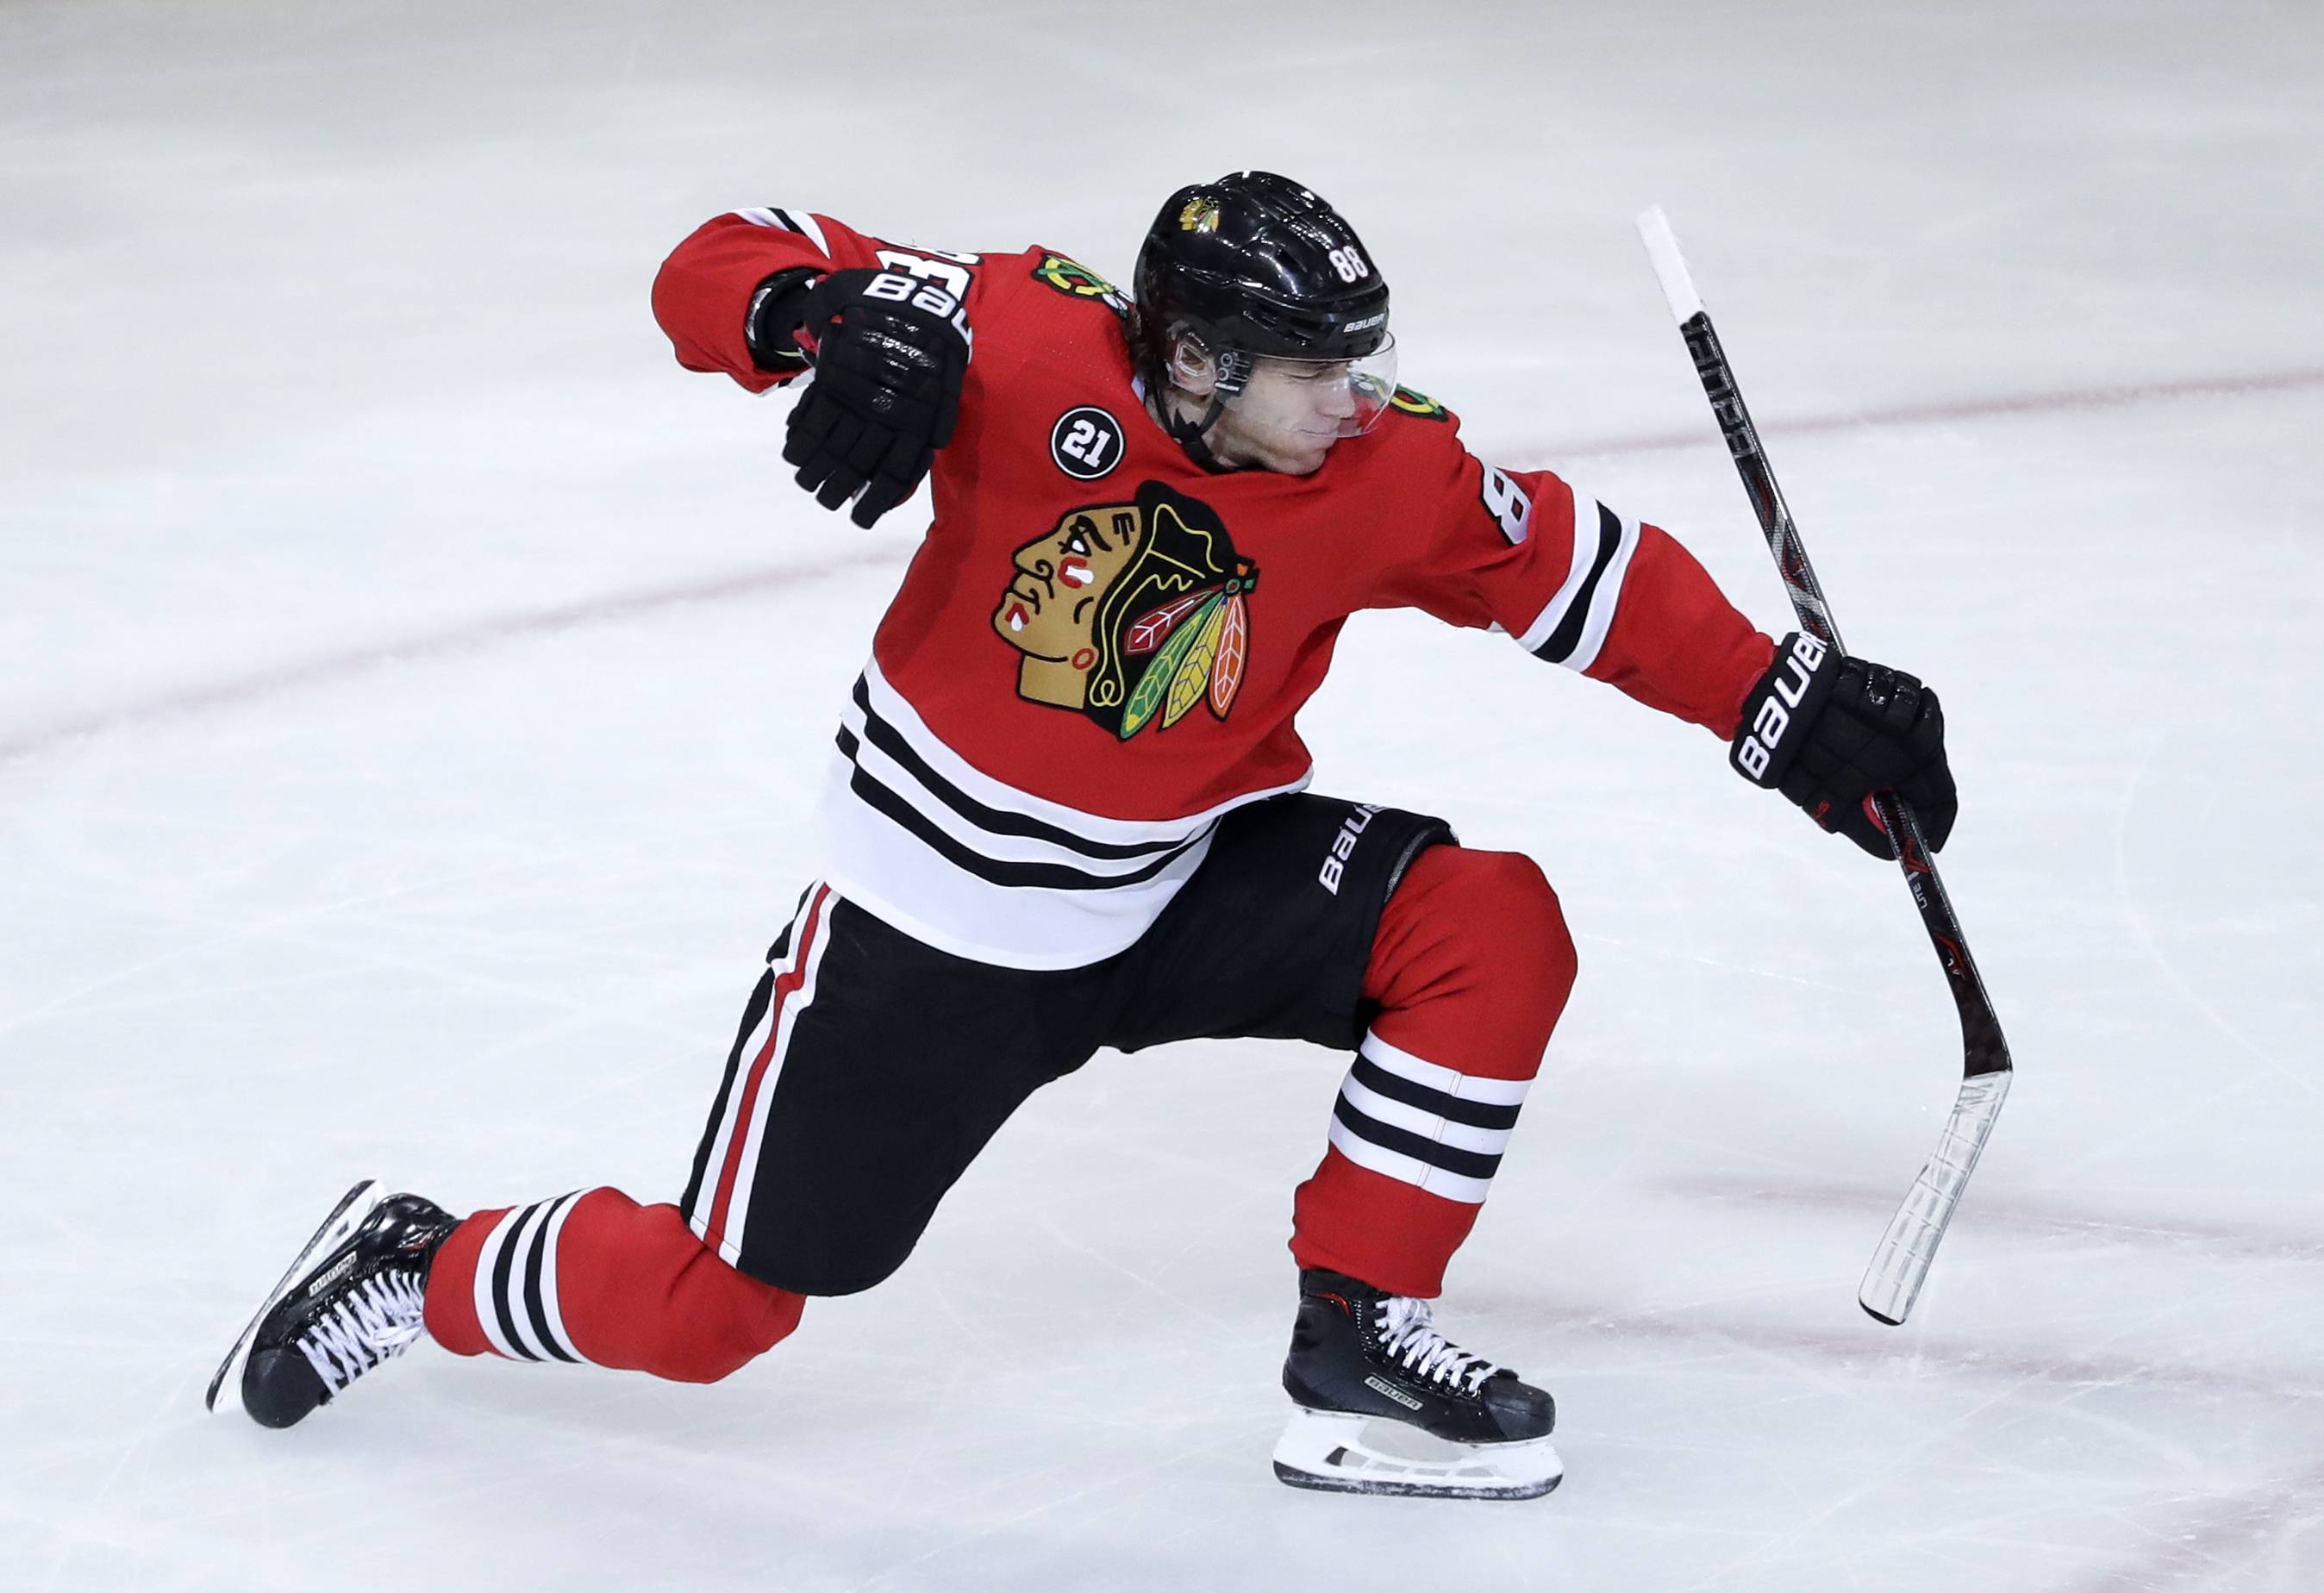 Chicago Blackhawks right wing Patrick Kane celebrates after scoring a goal against the Detroit Red Wings during the third period of an NHL hockey game Sunday, Feb. 10, 2019, in Chicago.